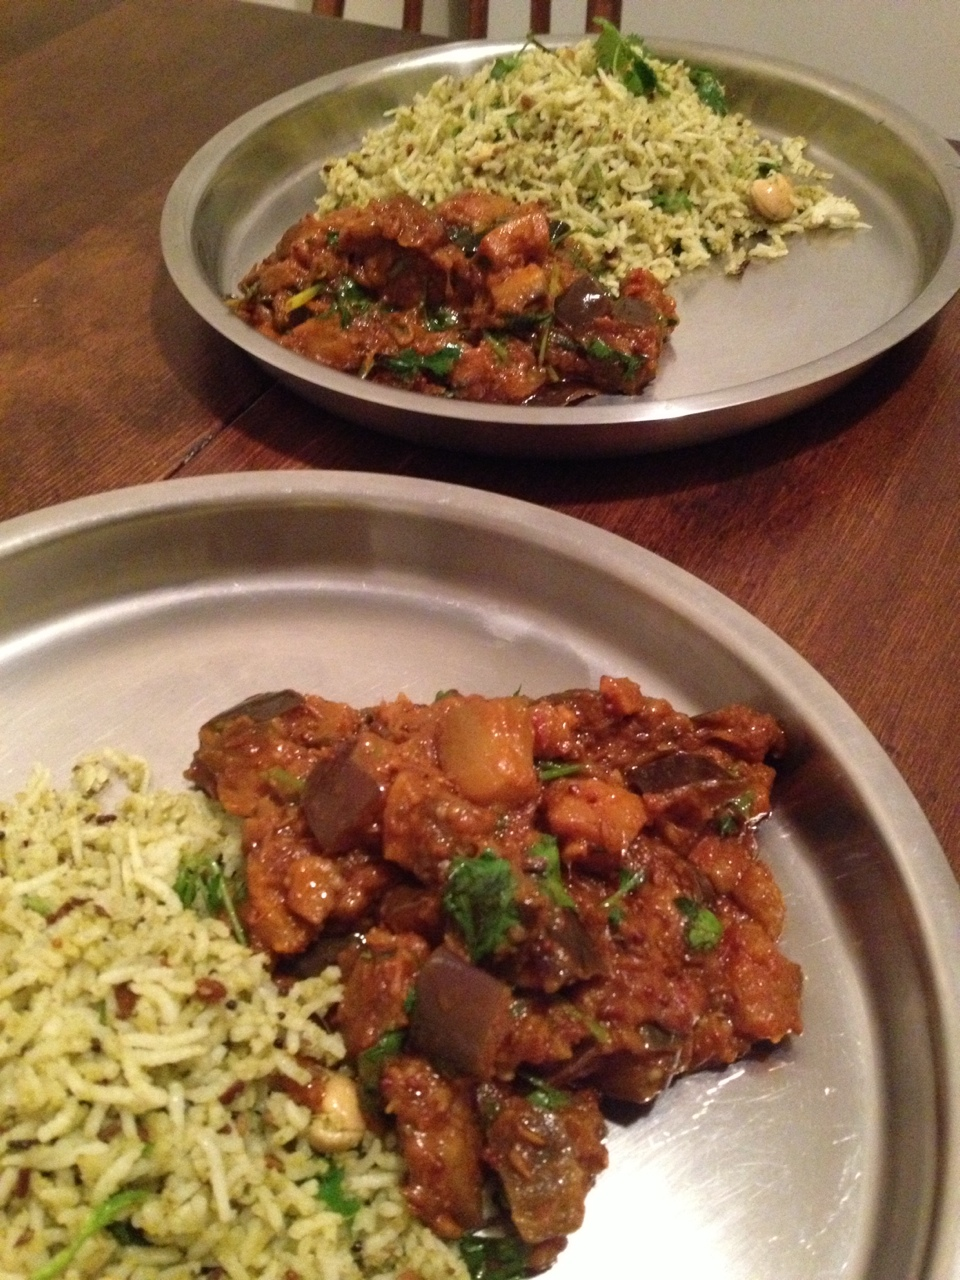 Homemade eggplant curry by  velogold  ! I was lucky enough to learn from one of the best. Before I met him, I knew absolutely nothing about cooking Indian dishes, but now I can say that I at least know how to make a bomb ass curry. I am forever grateful that he changed my life!